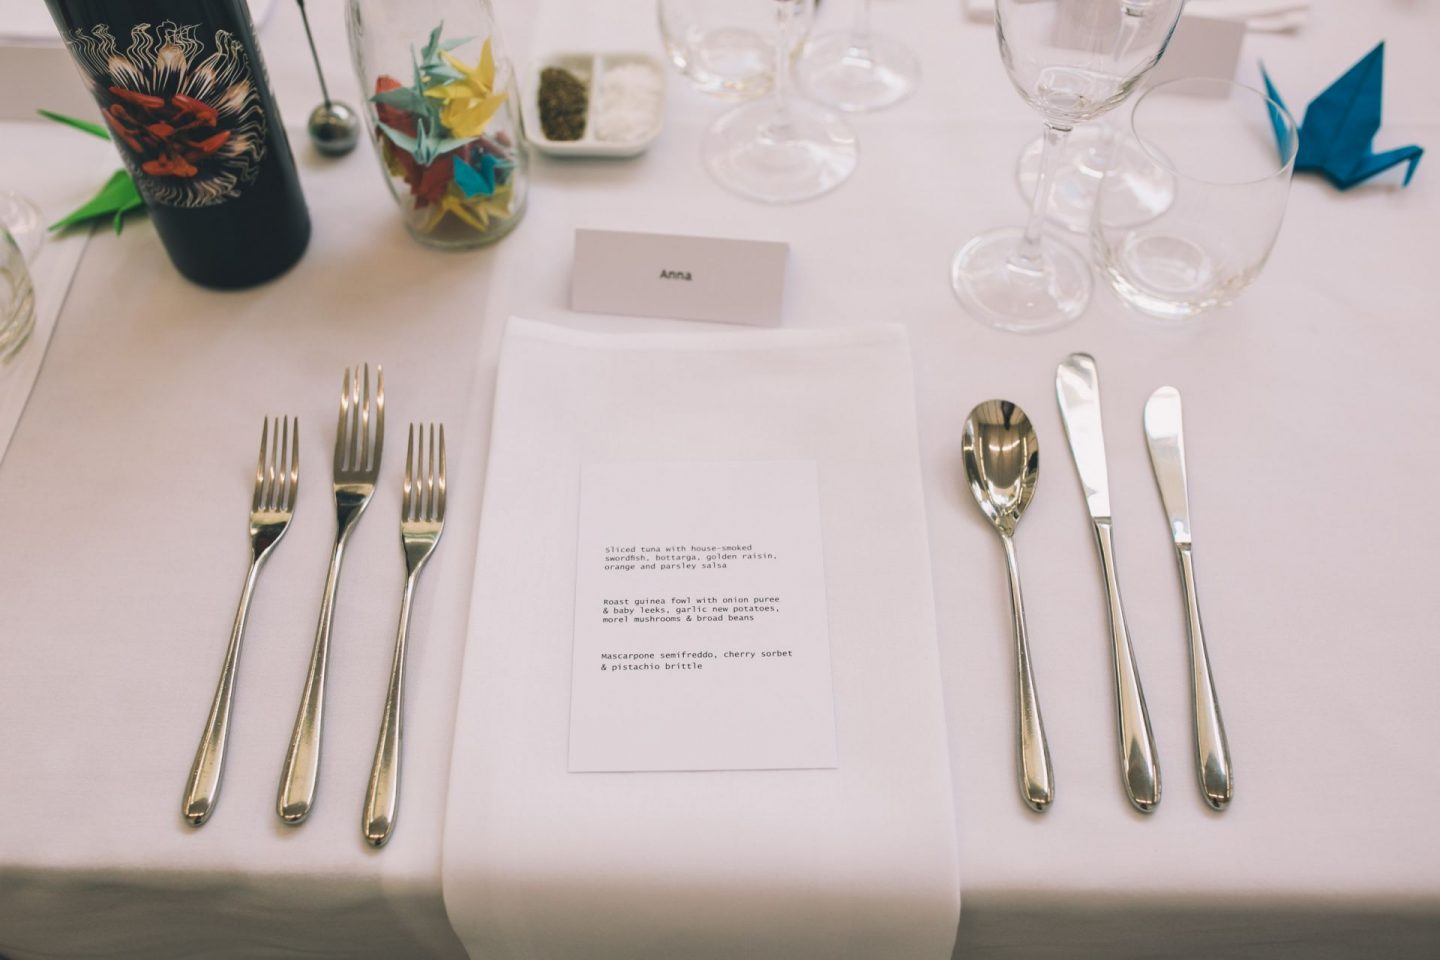 south london gallery place setting